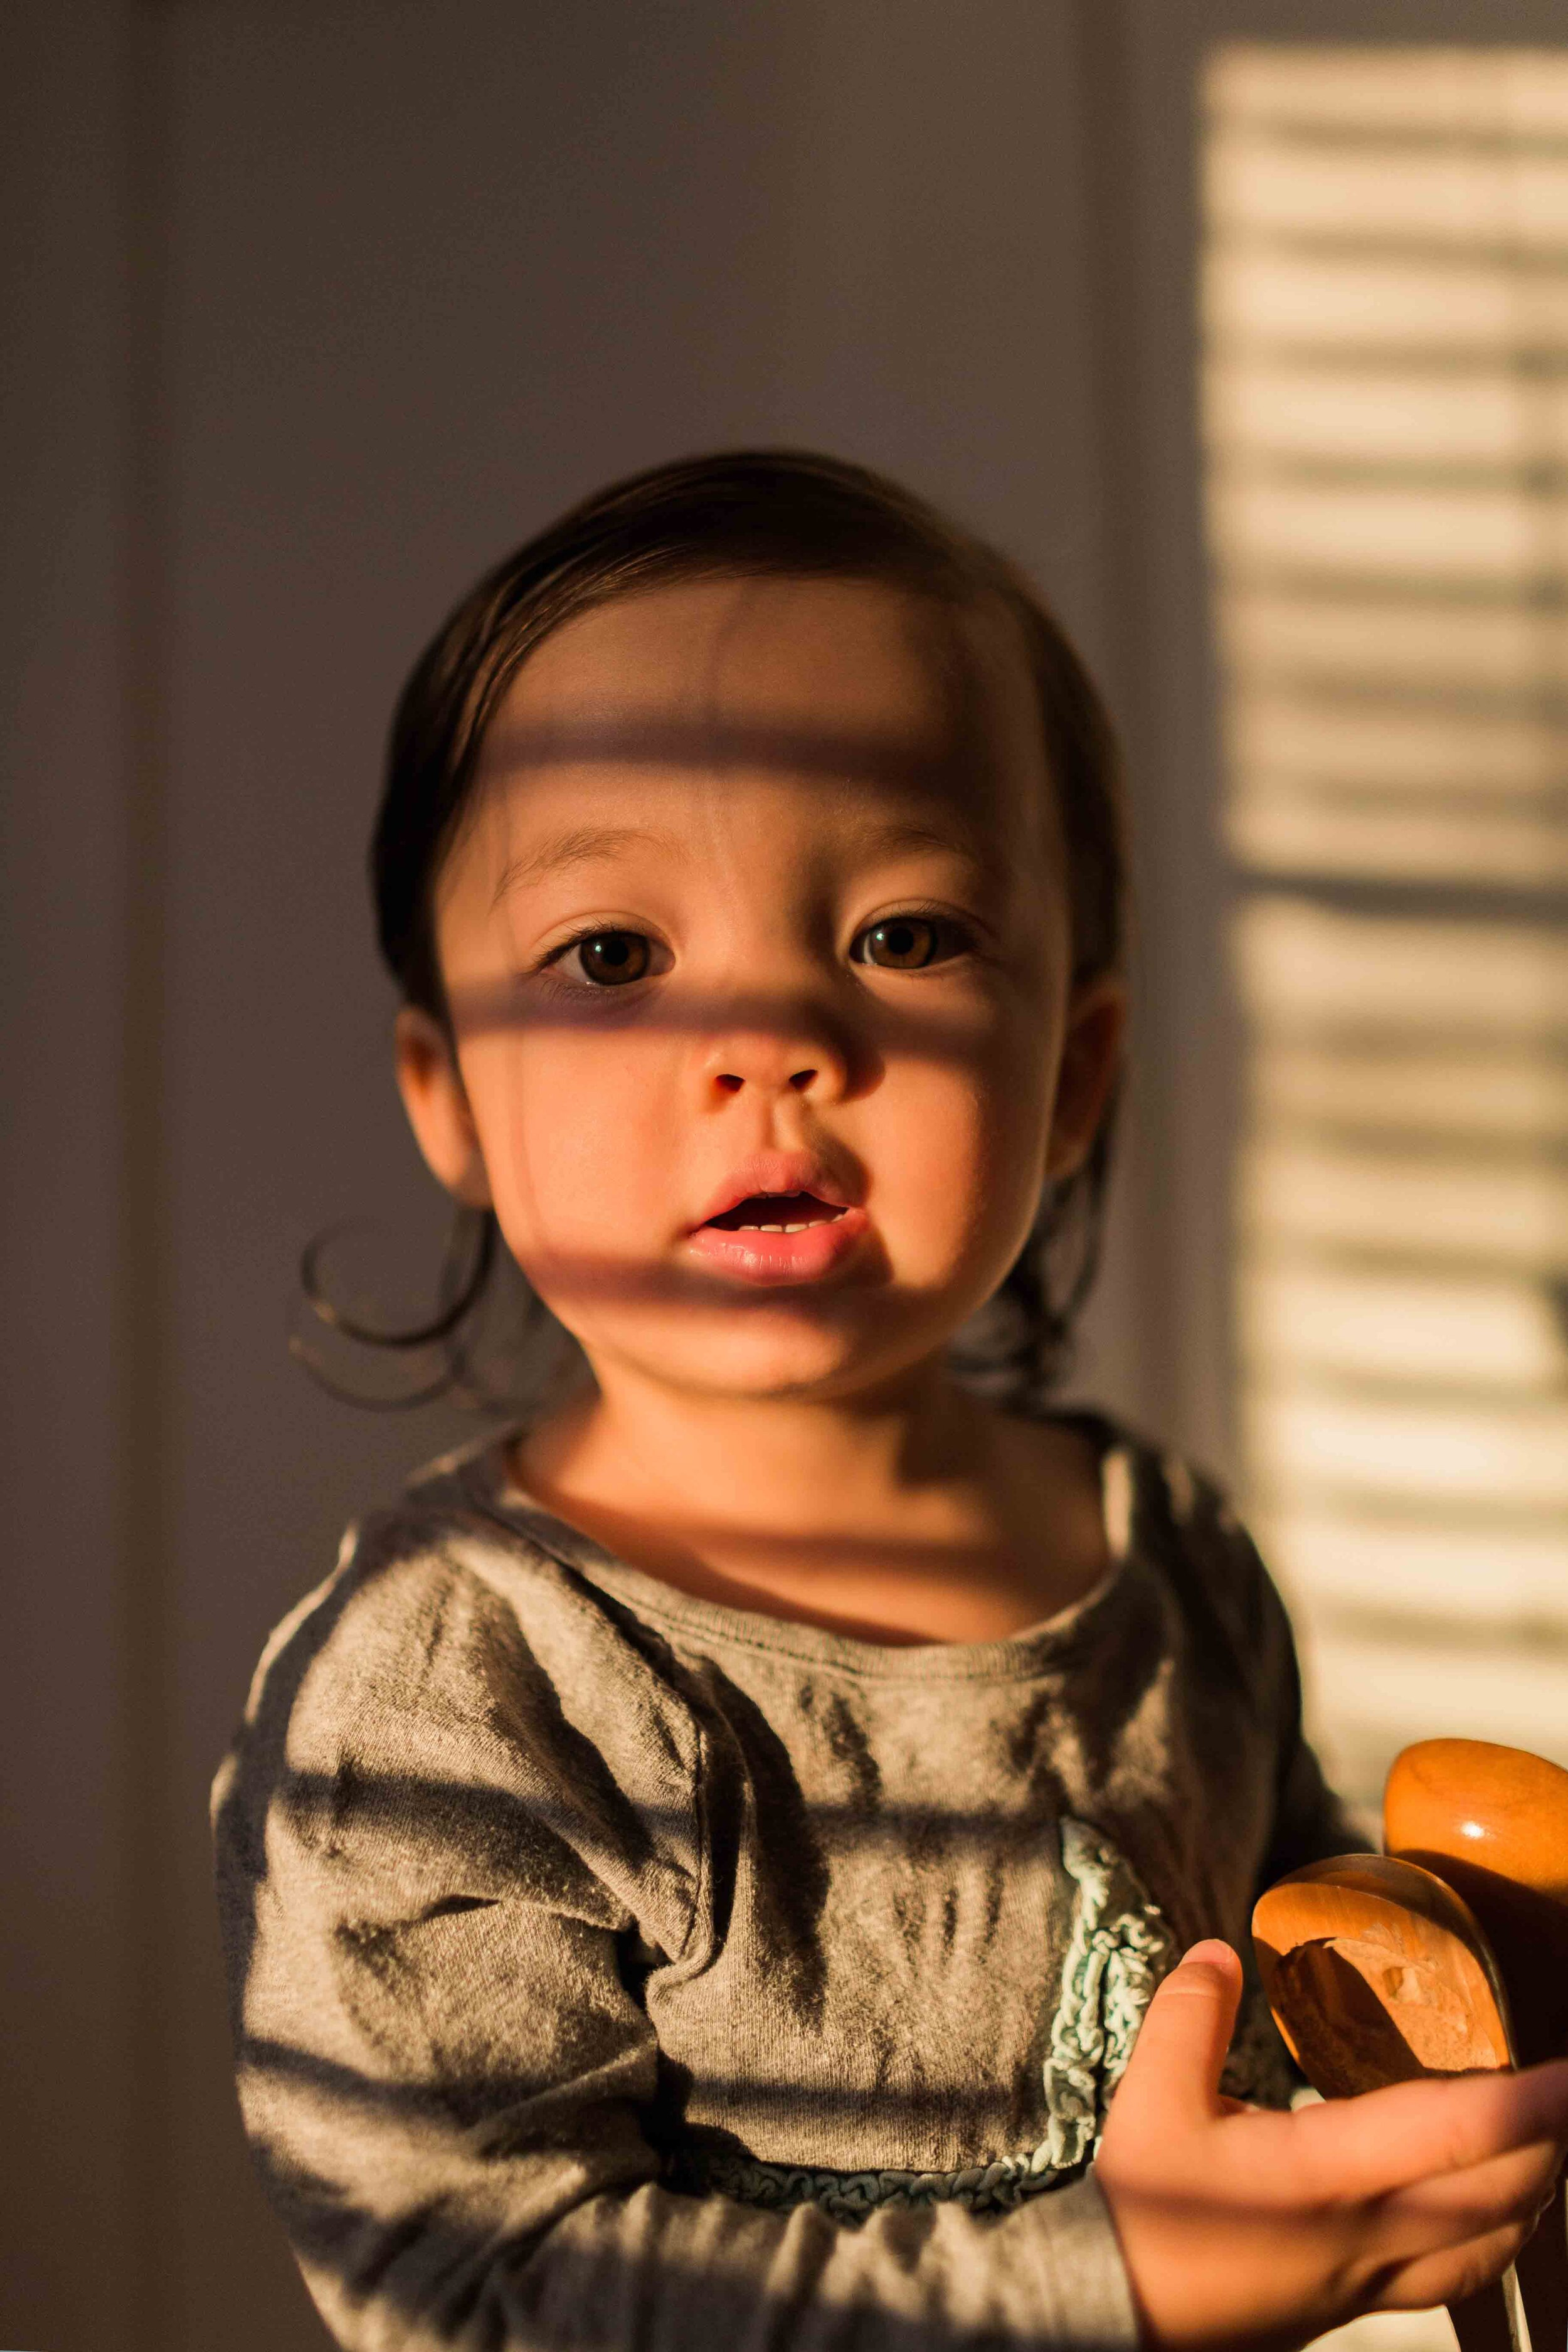 light through window blinds onto baby's face